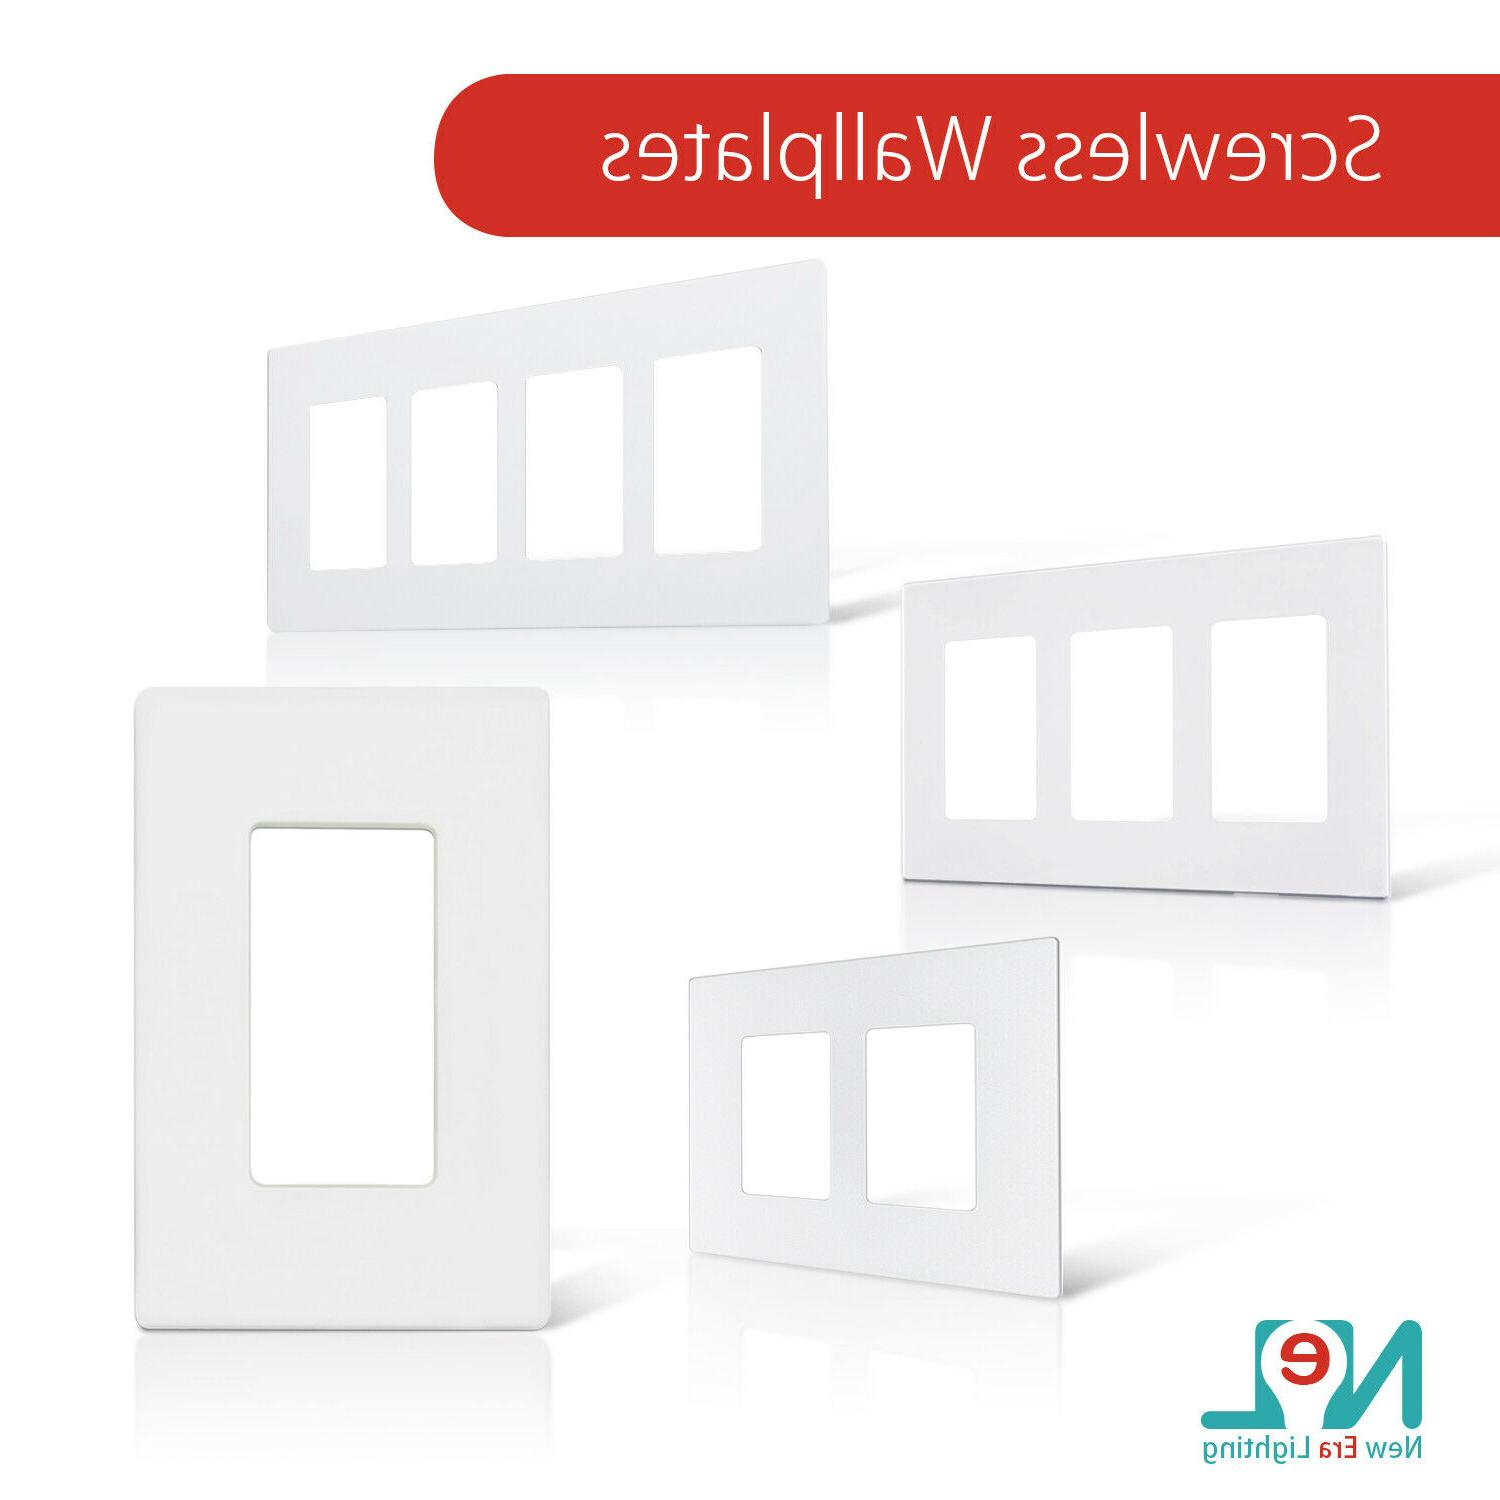 screwless wallplate 1 3 gang white switch